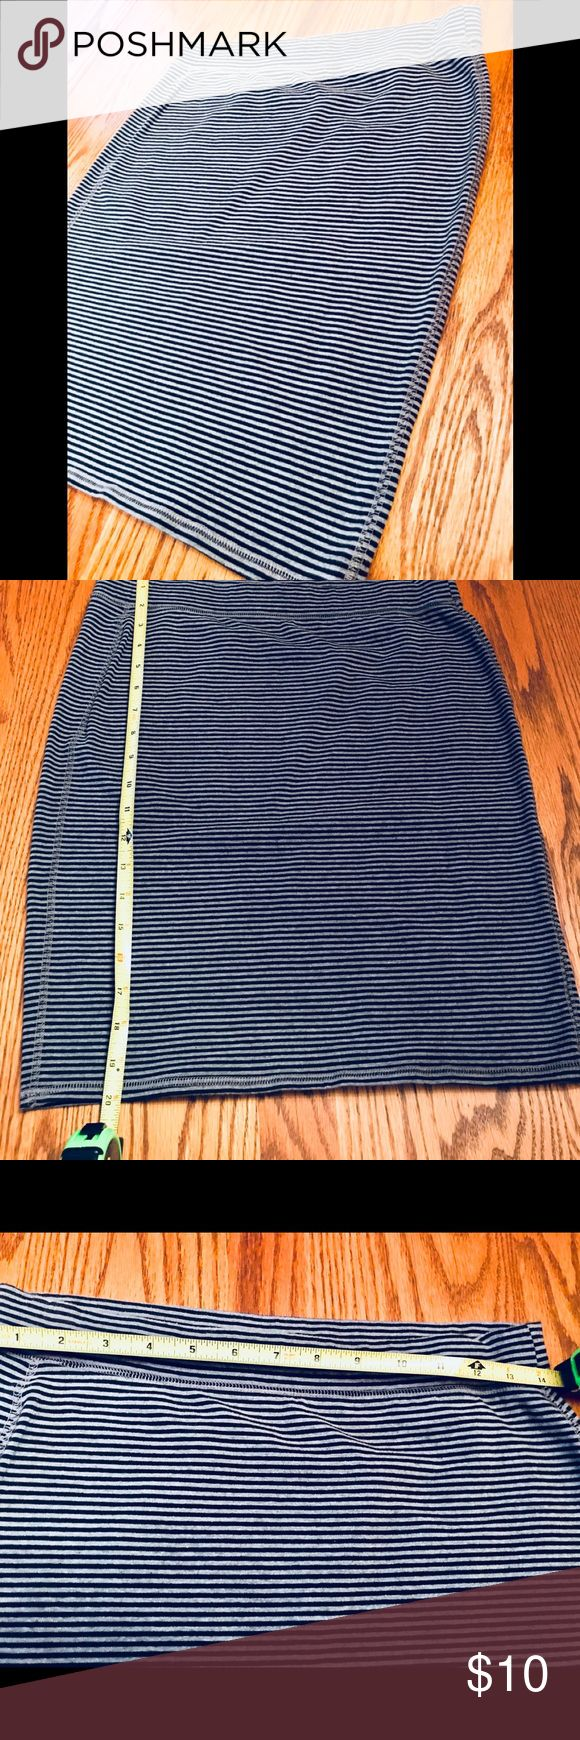 Old Navy striped Skirt Excellent condition. No tears, Rips, or holes. Worn only a couple times. It's great for layering and goes with anything. Old Navy Skirts Midi